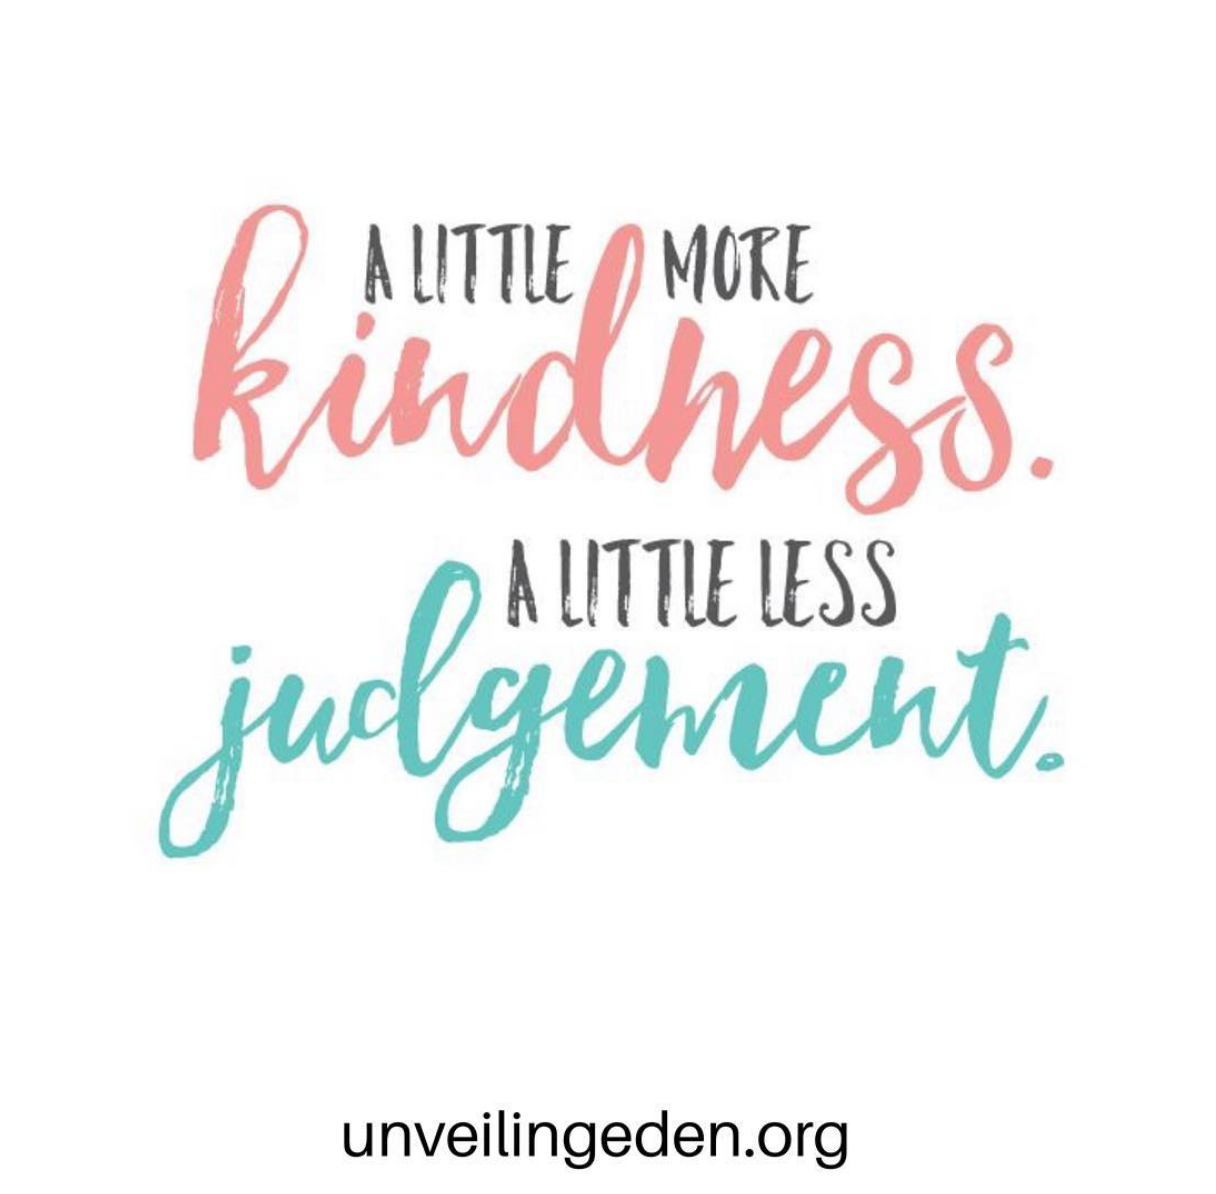 a little more kindness a little less judgement unveilingeden